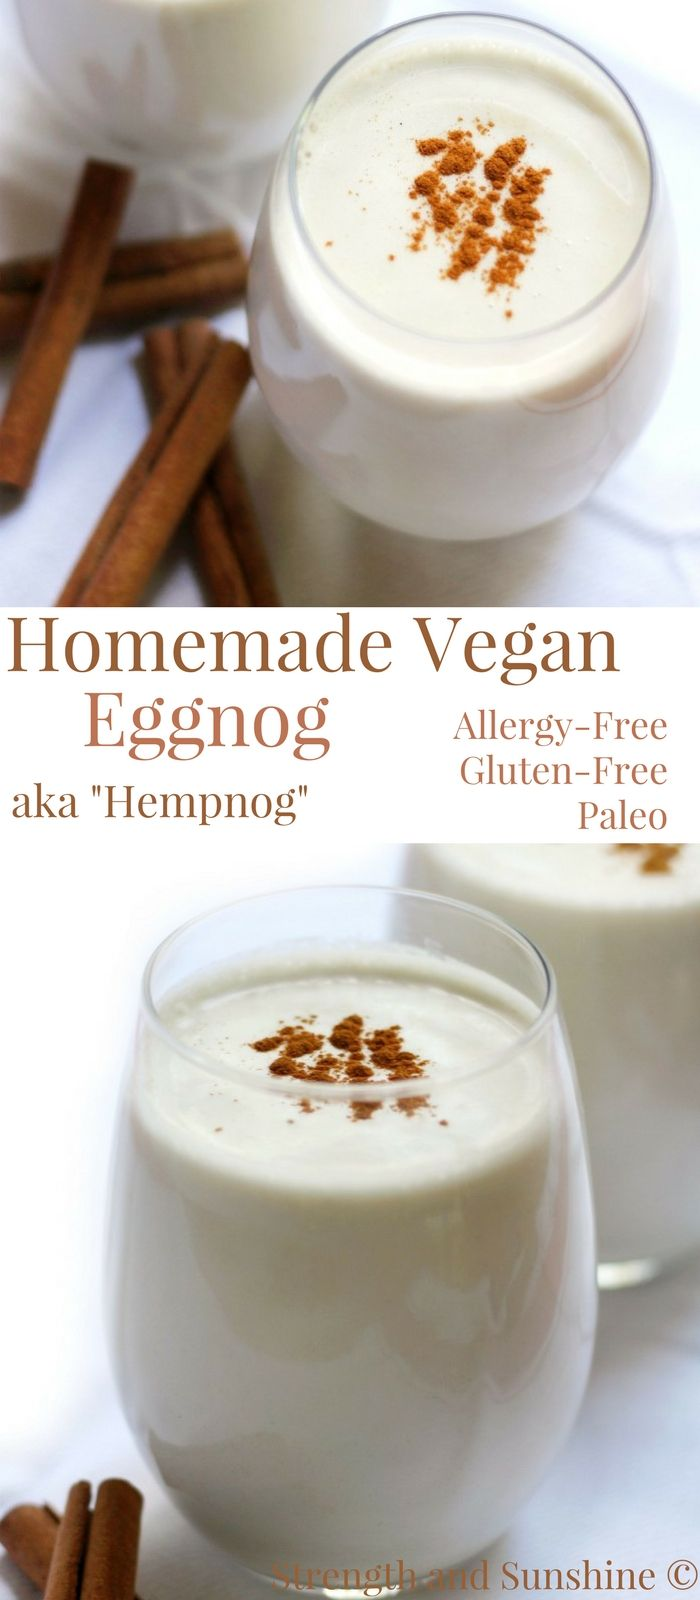 "Homemade Vegan Eggnog ""Hempnog"" (Gluten-Free, Allergy-Free, Paleo) 